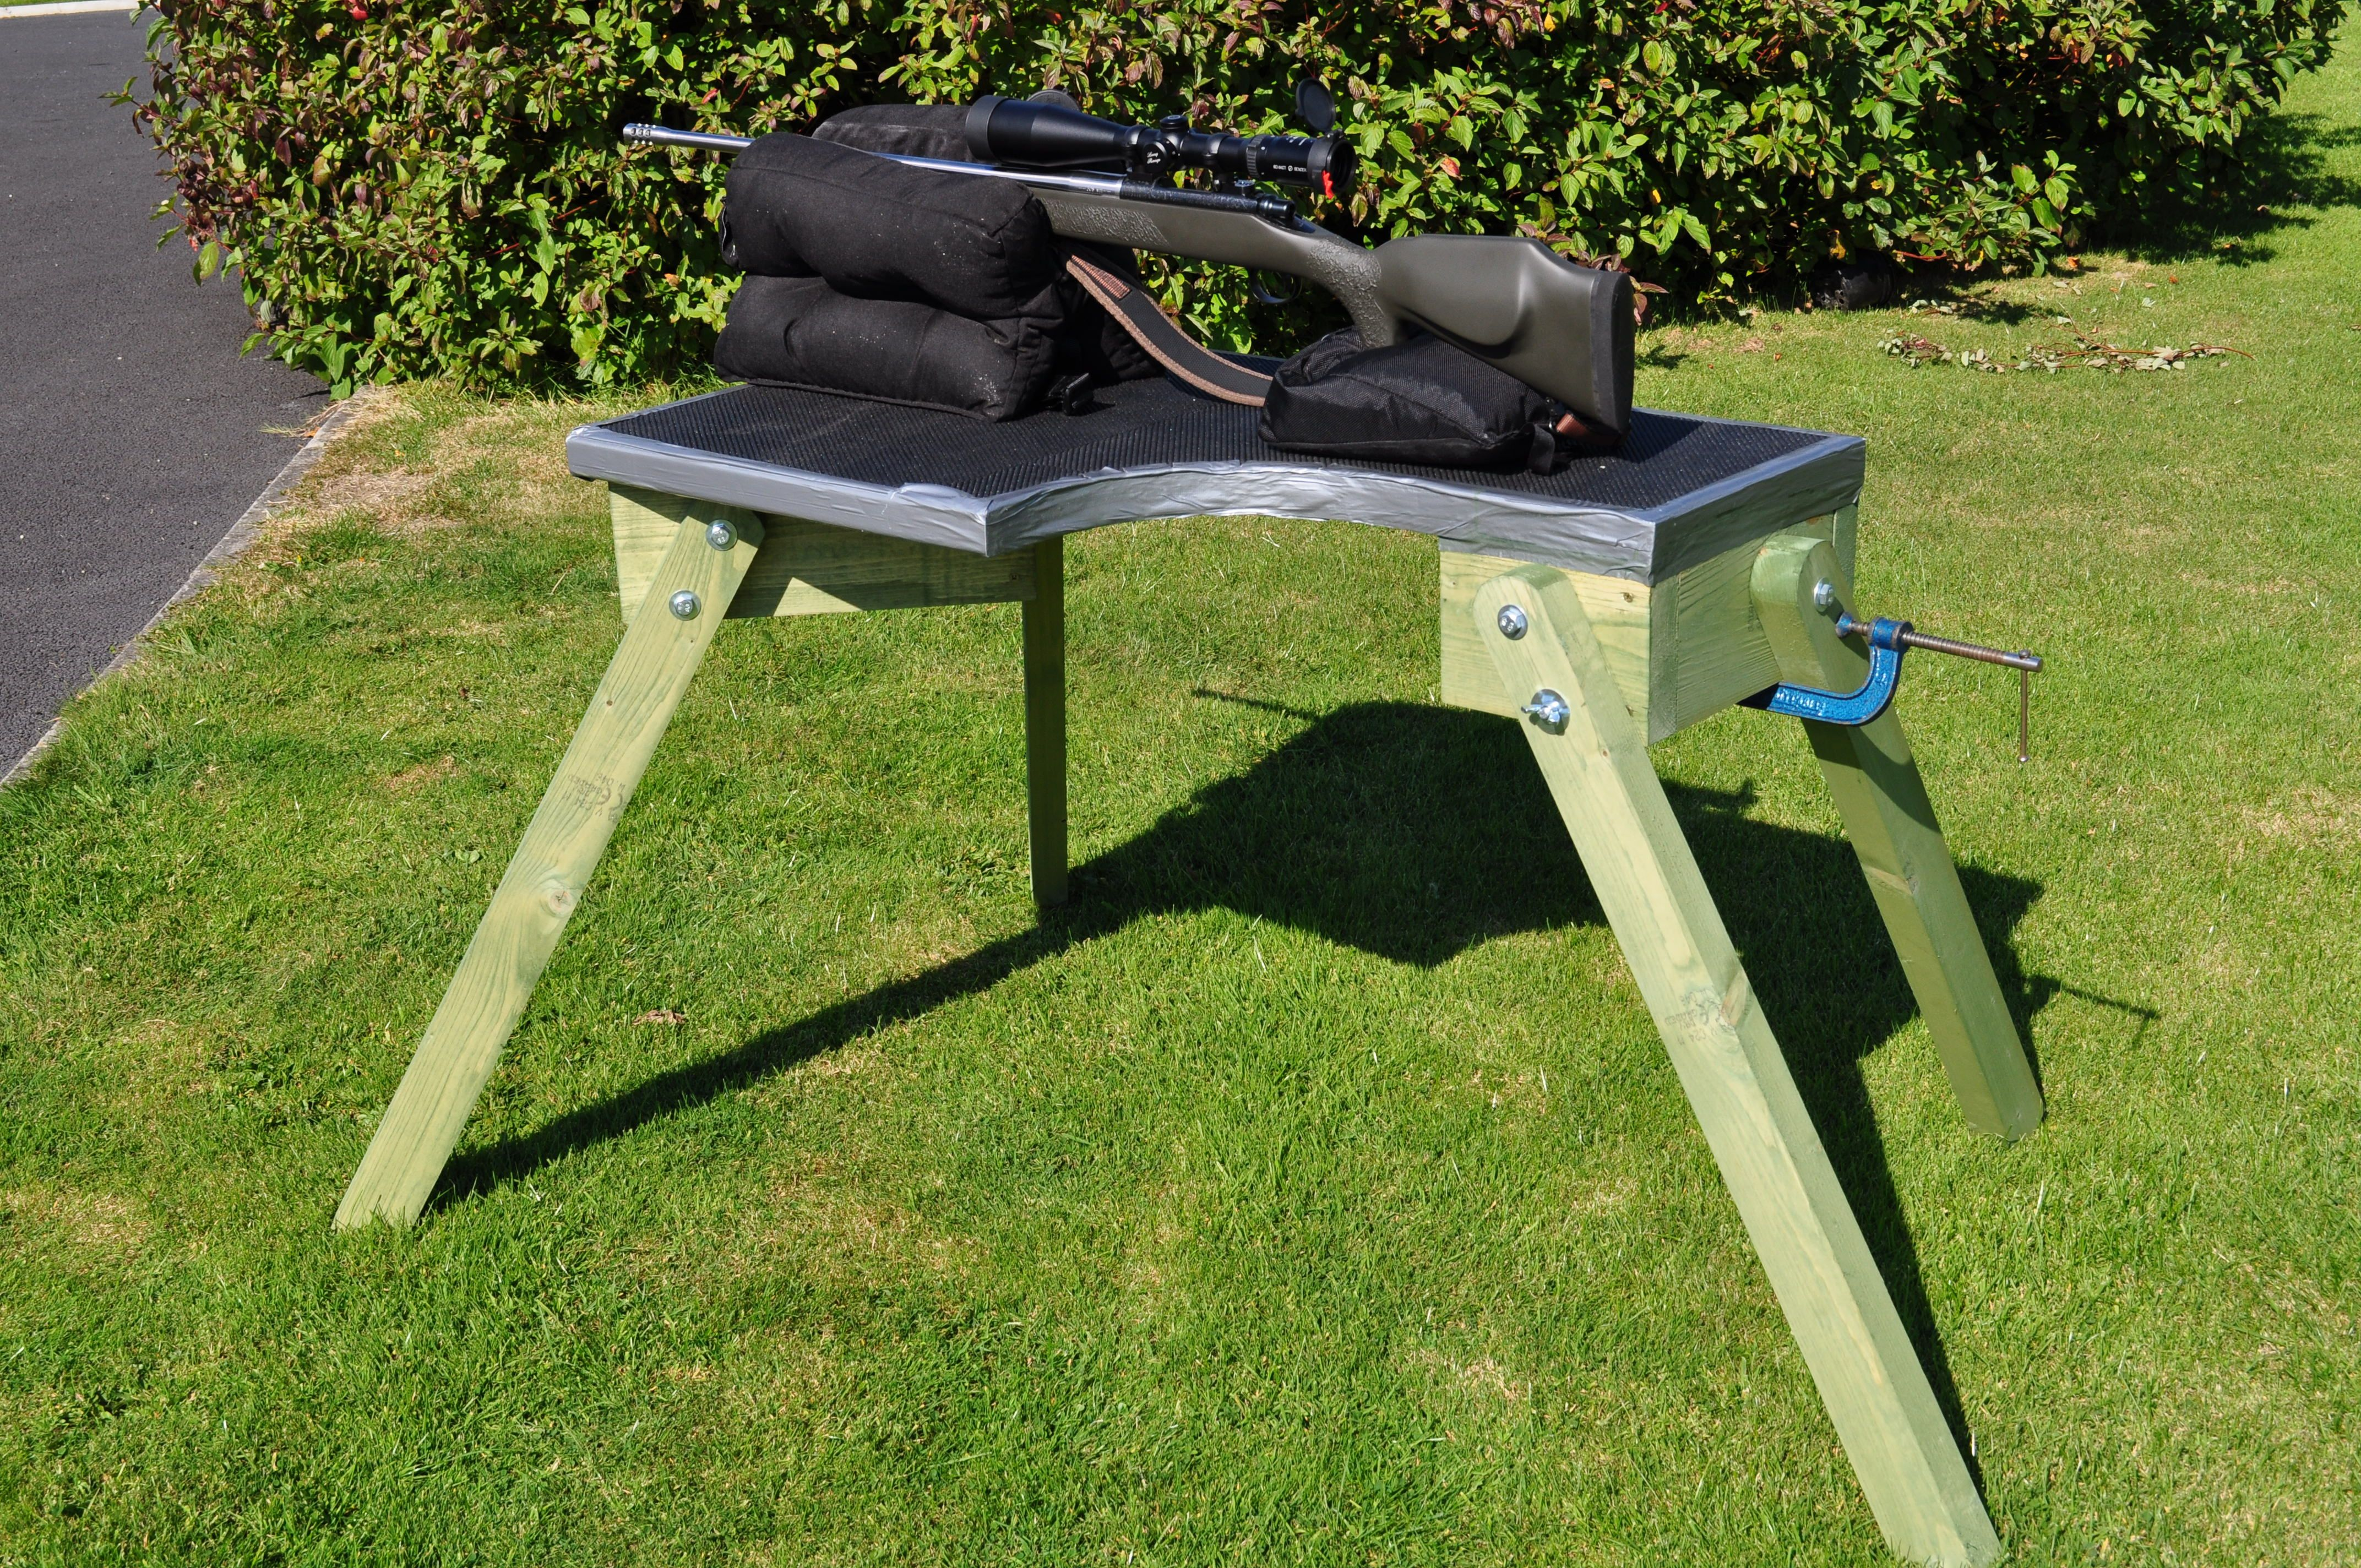 diy plans shooters bench Google Search …